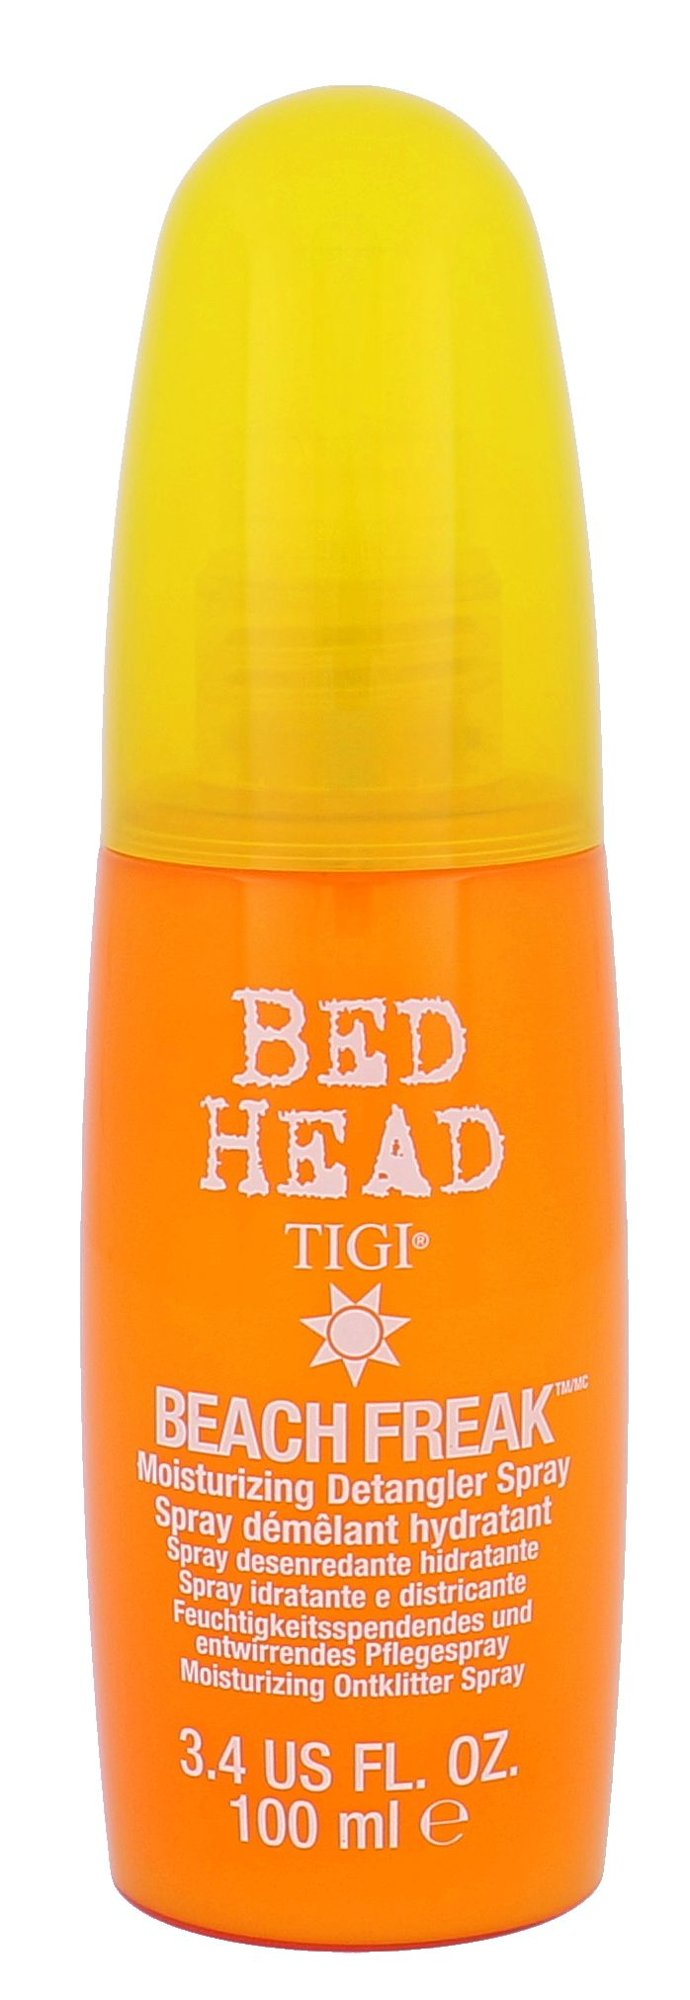 Tigi Bed Head Beach Freak Cosmetic 100ml